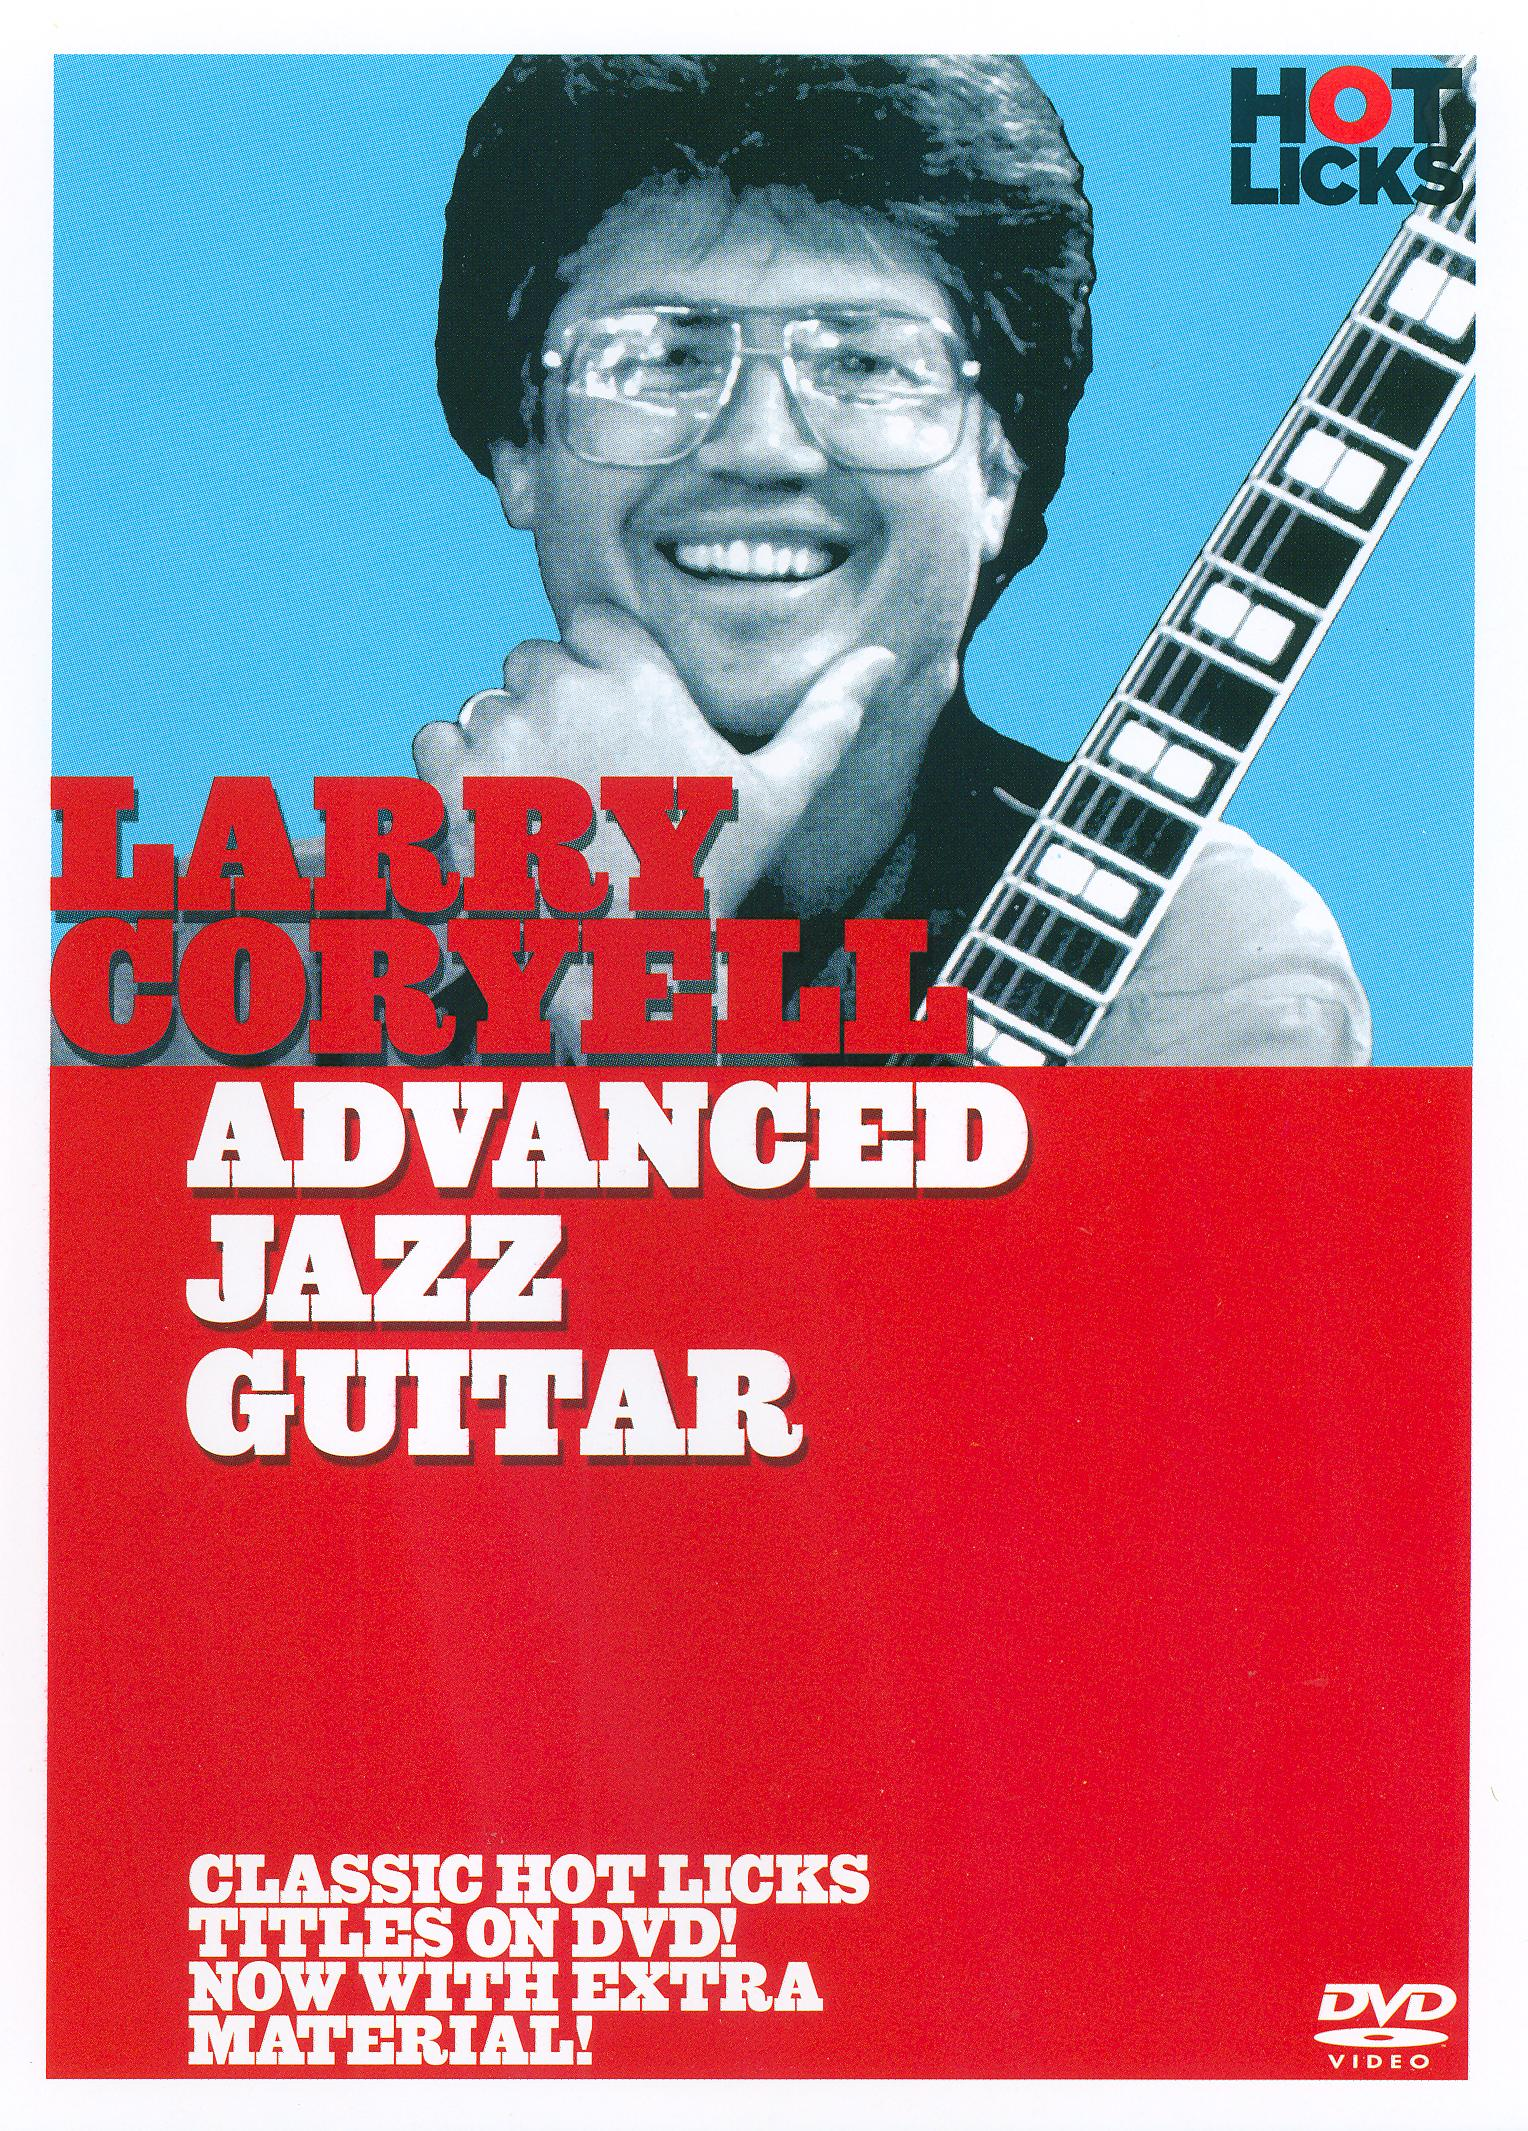 Larry Coryell: Advanced Jazz Guitar